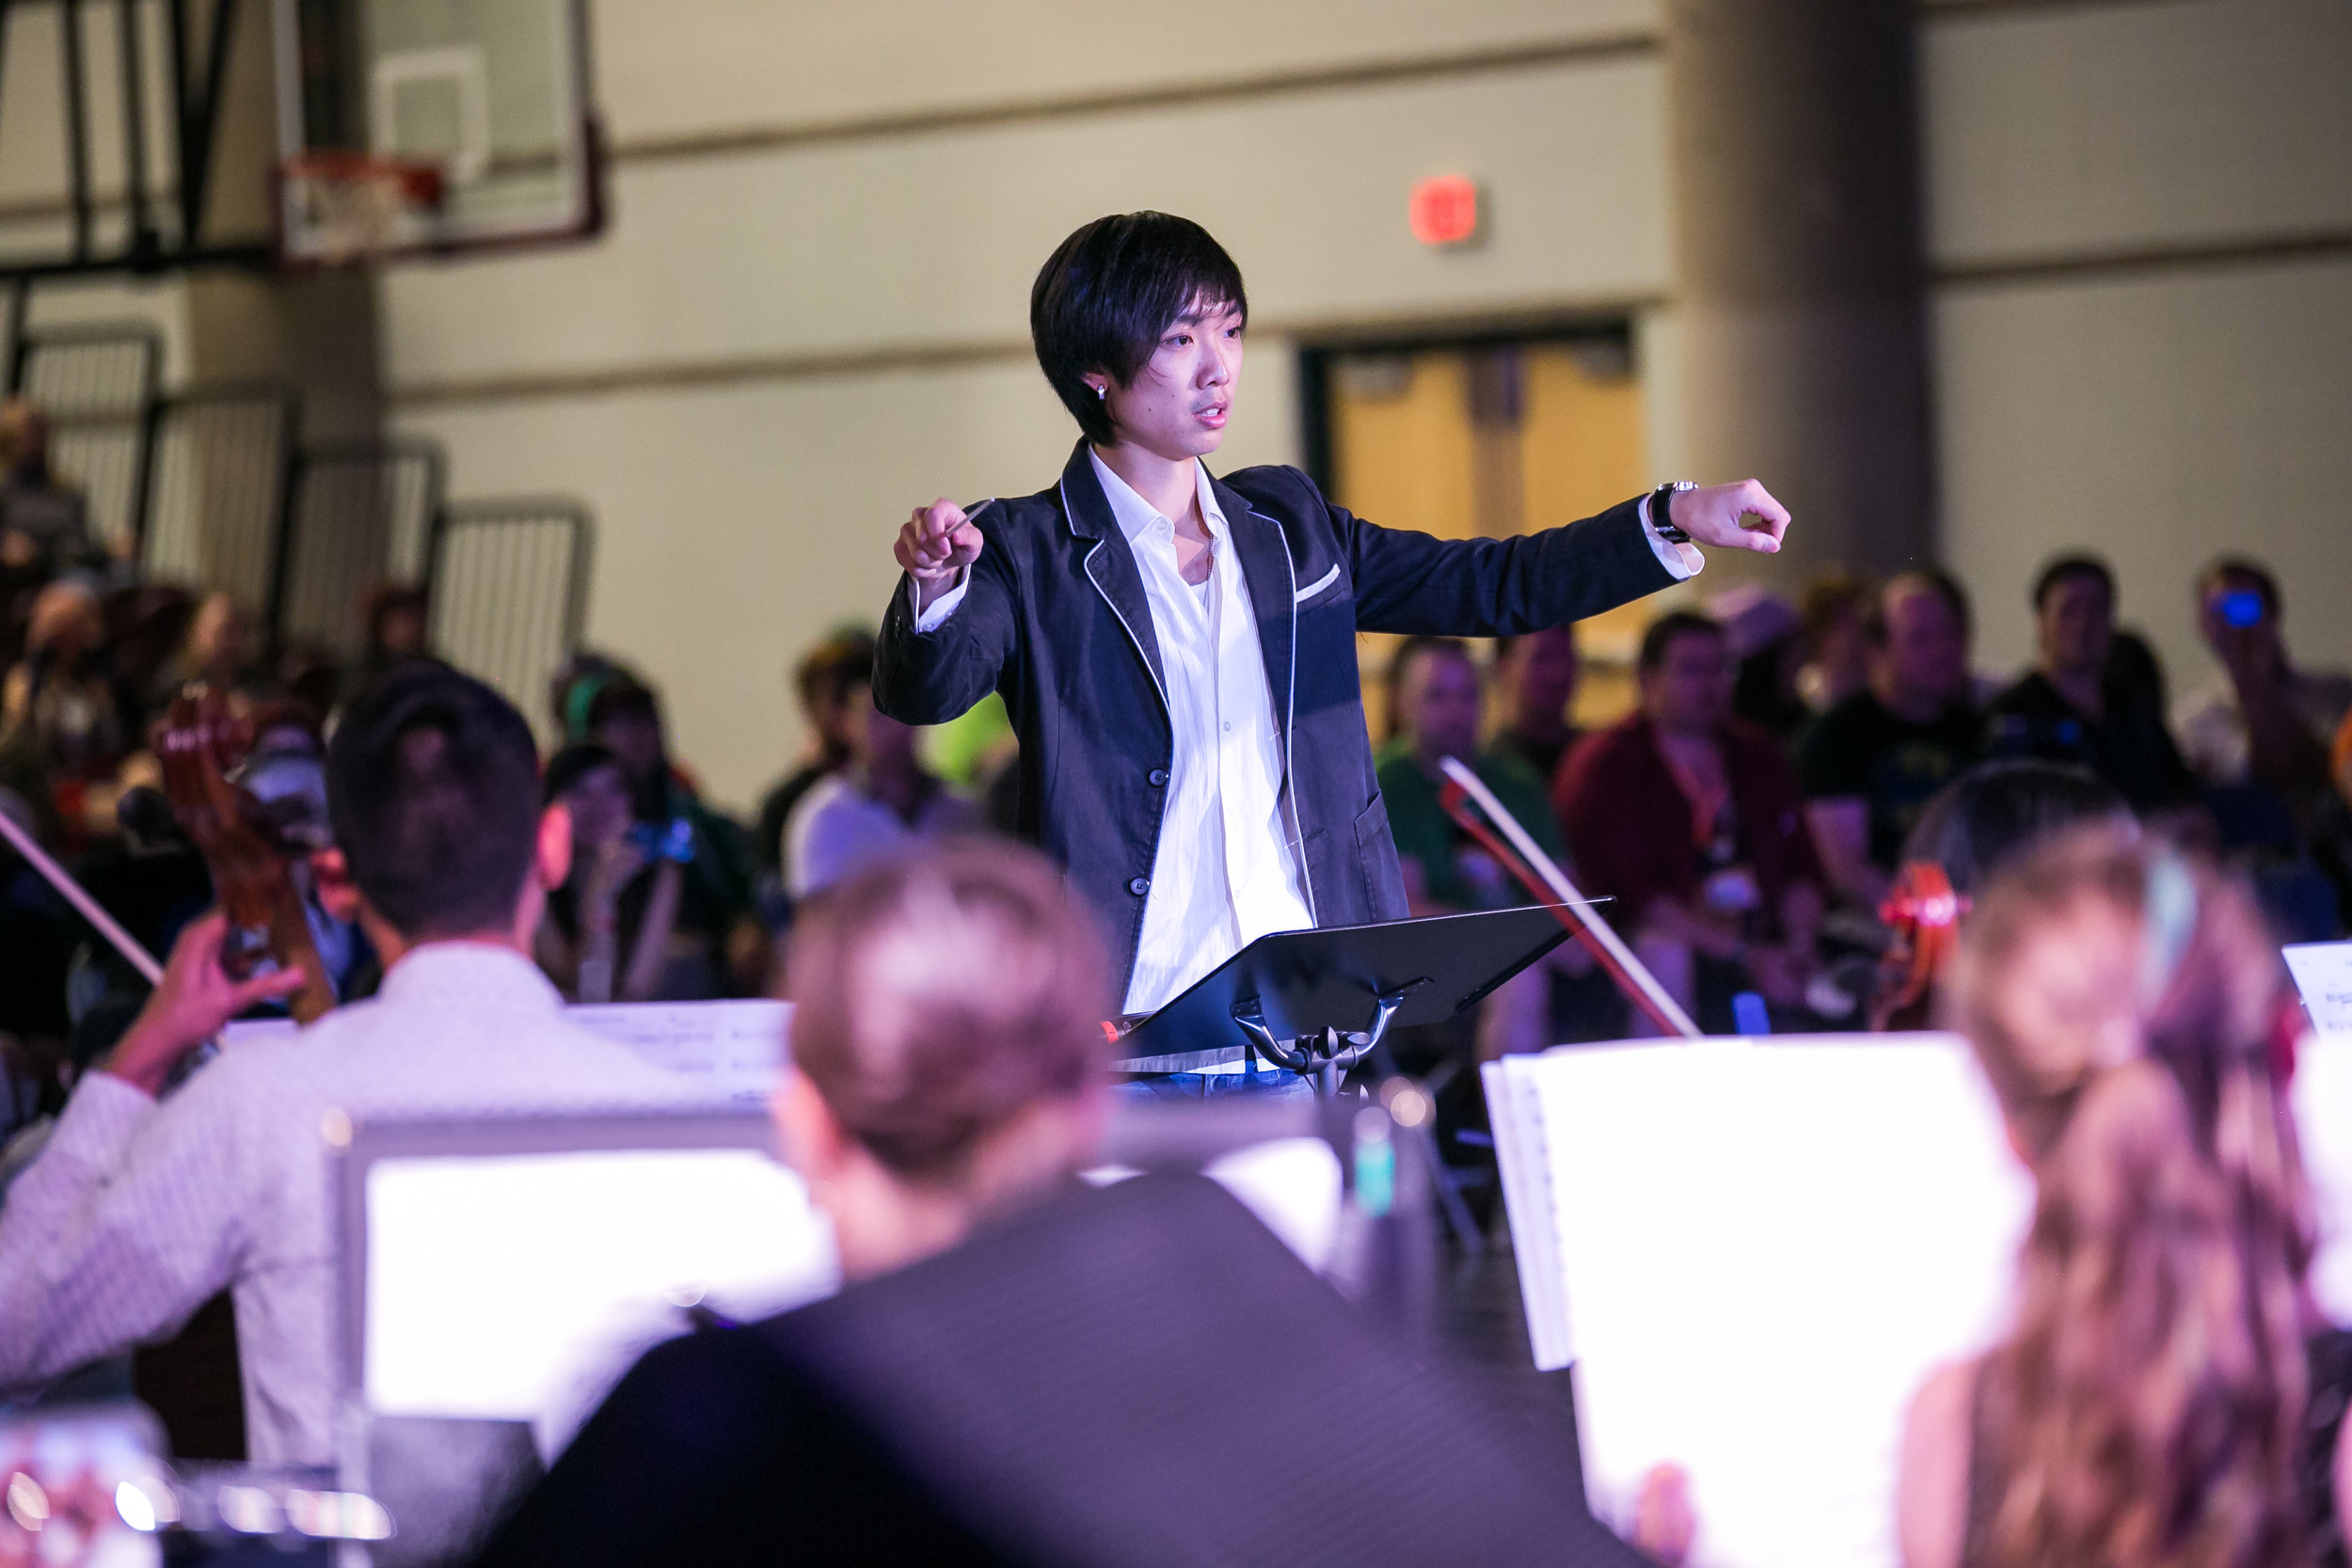 Shawn conducting Orbis Orchestra during its first year in 2015